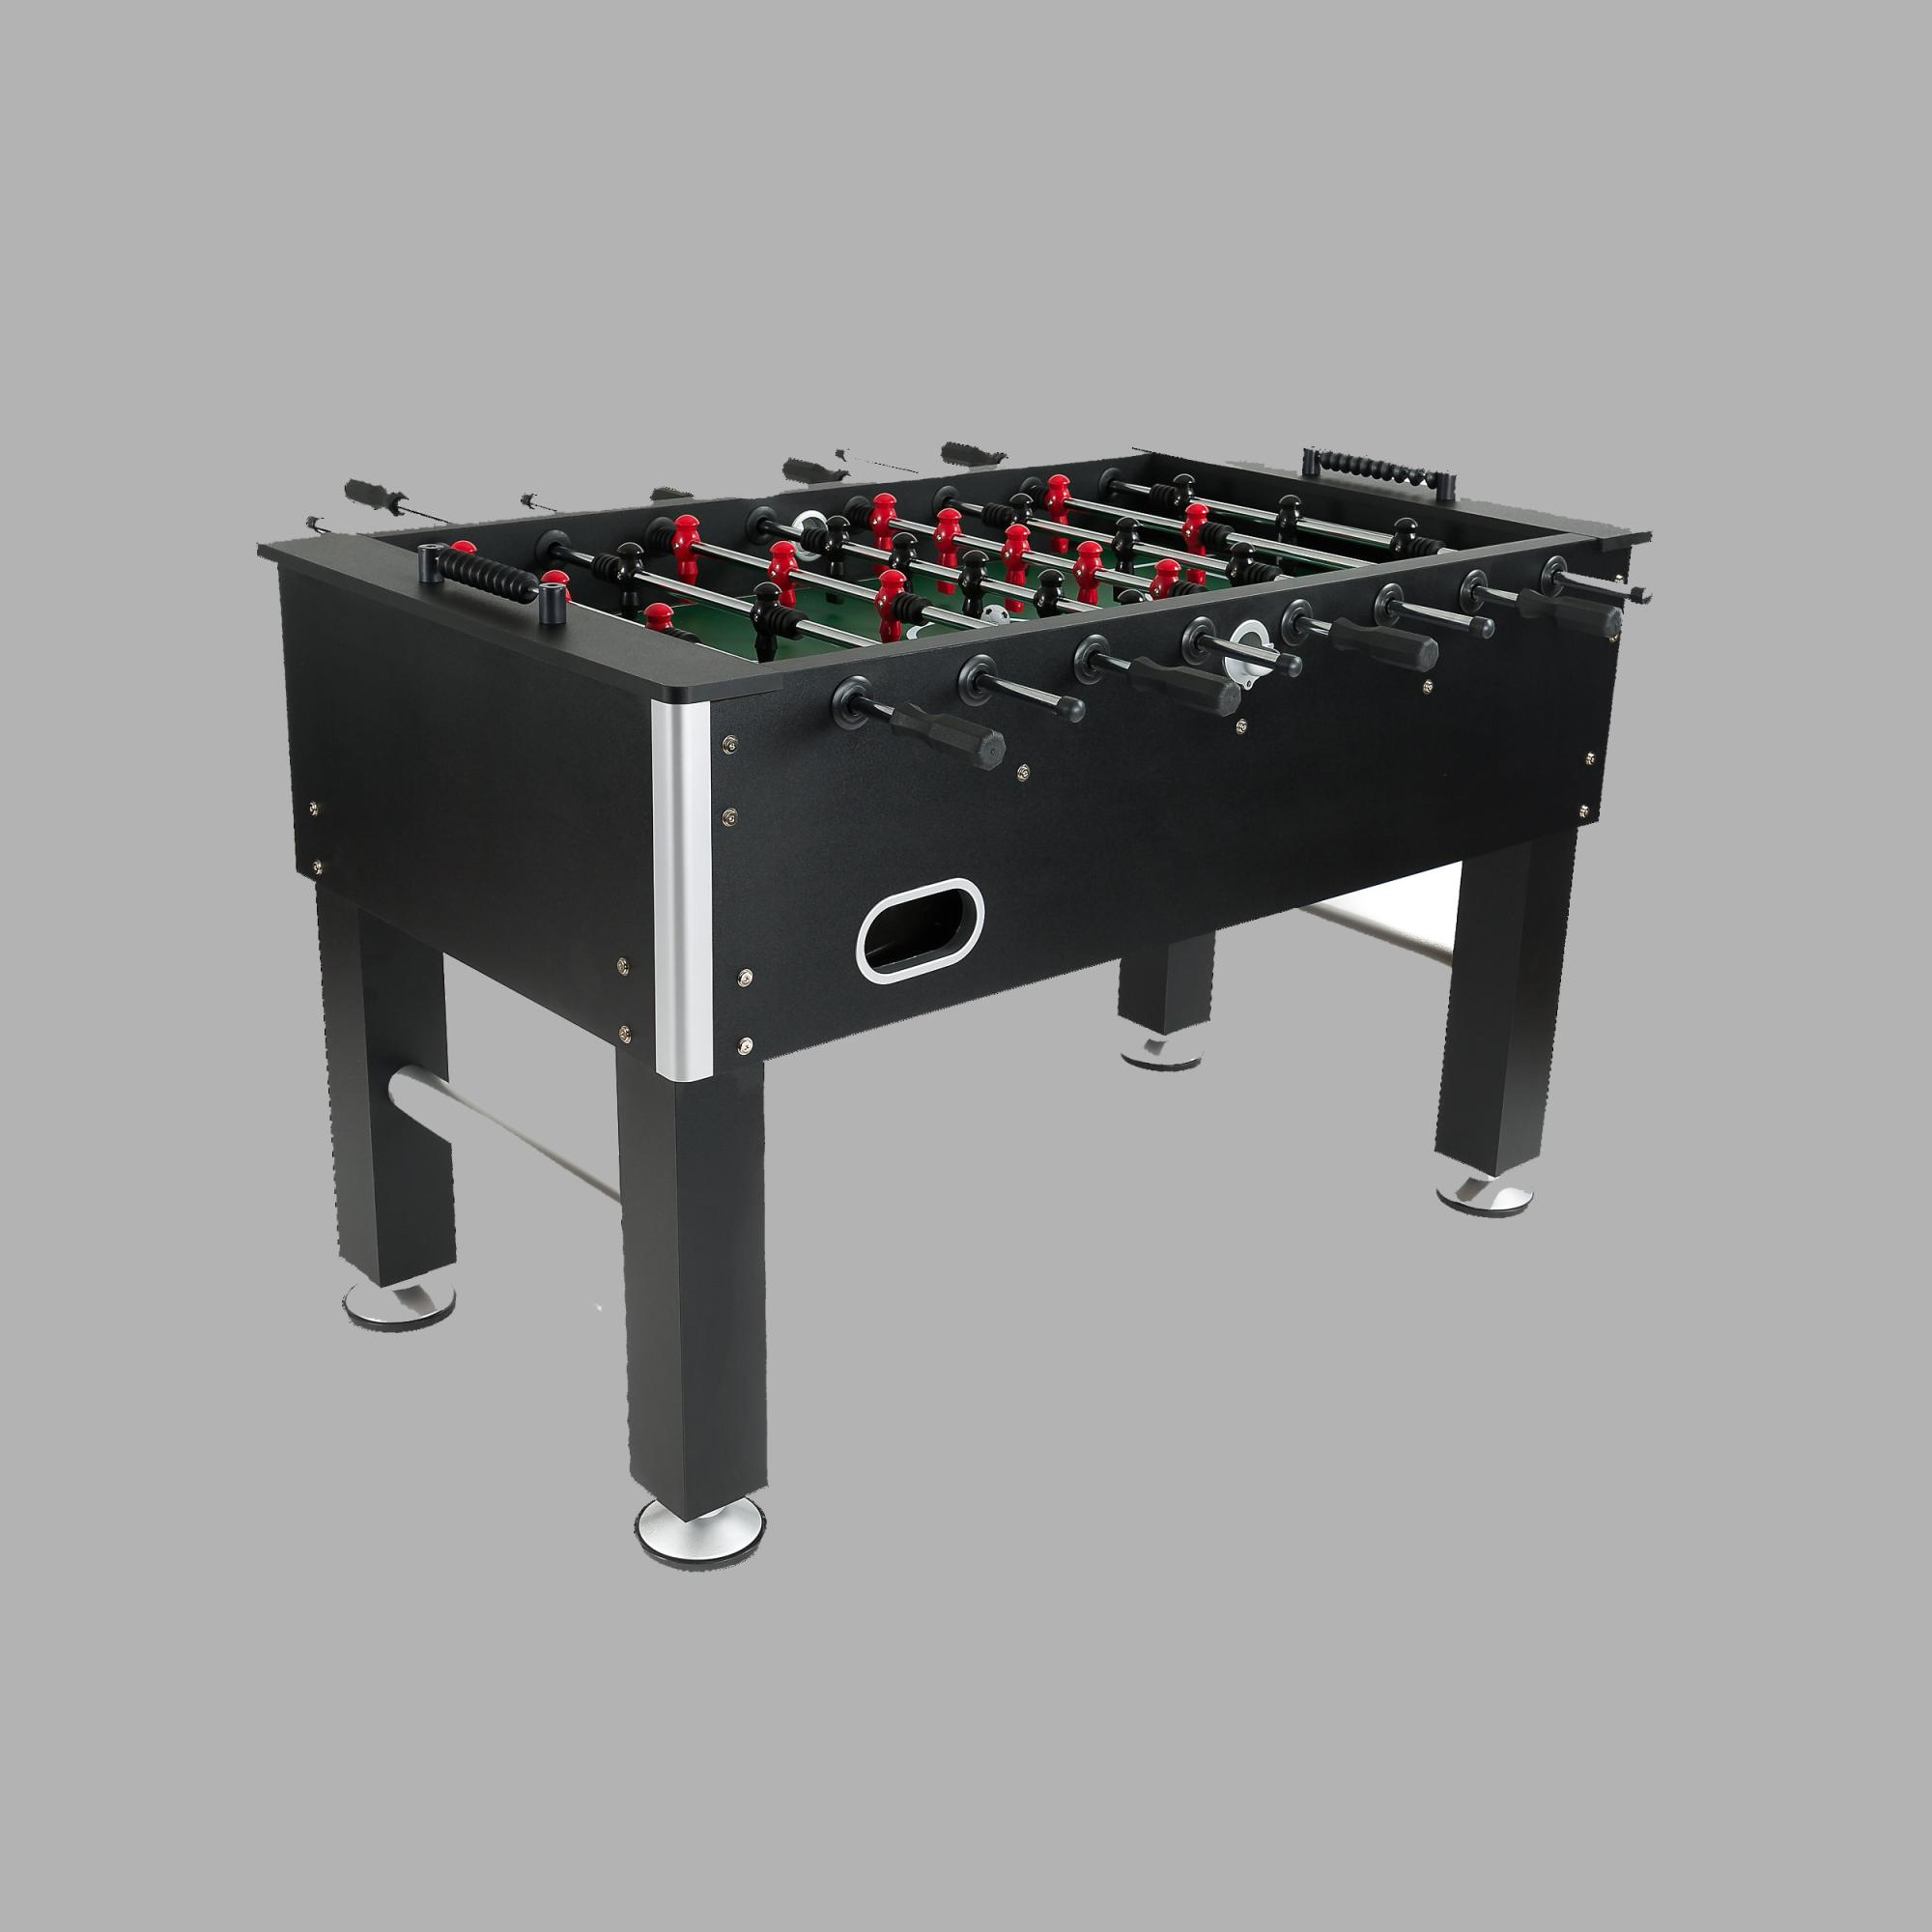 The Presidential Bolt Foosball Is Designed For Serious Player With Its Sleek Black Finish This Regulation Size Table Has All Qualities